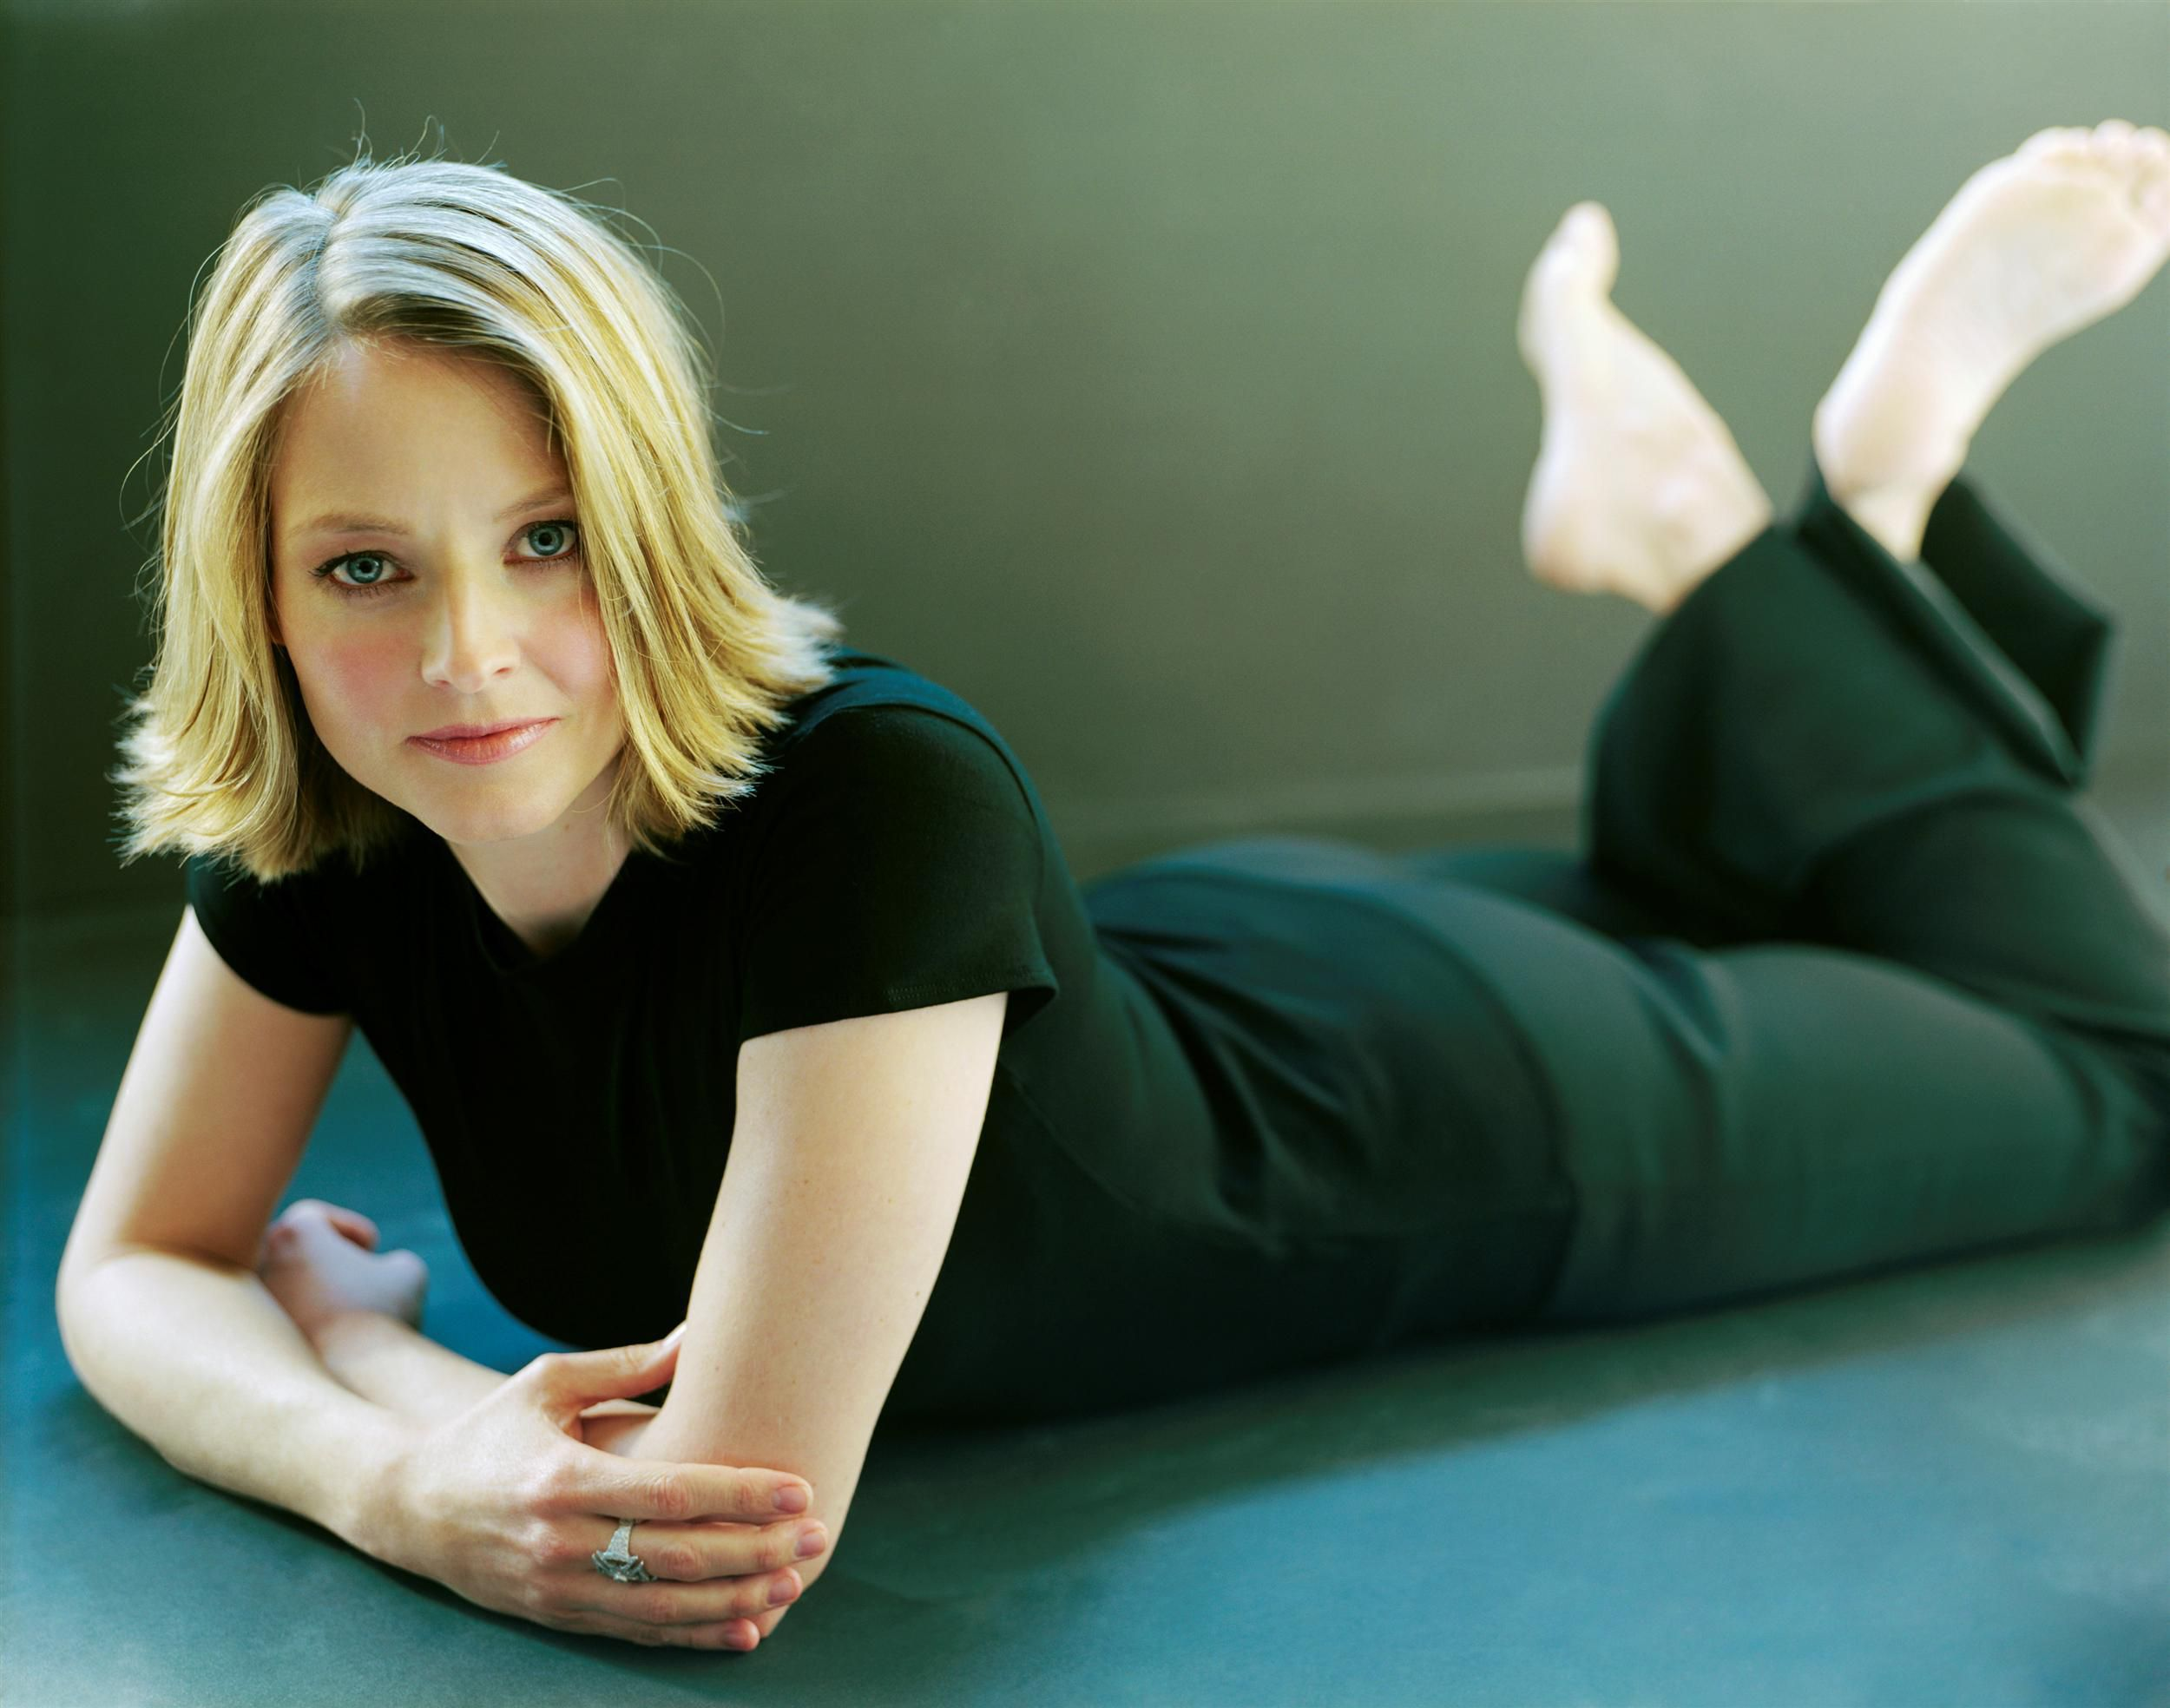 2500x1968 - Jodie Foster Wallpapers 3